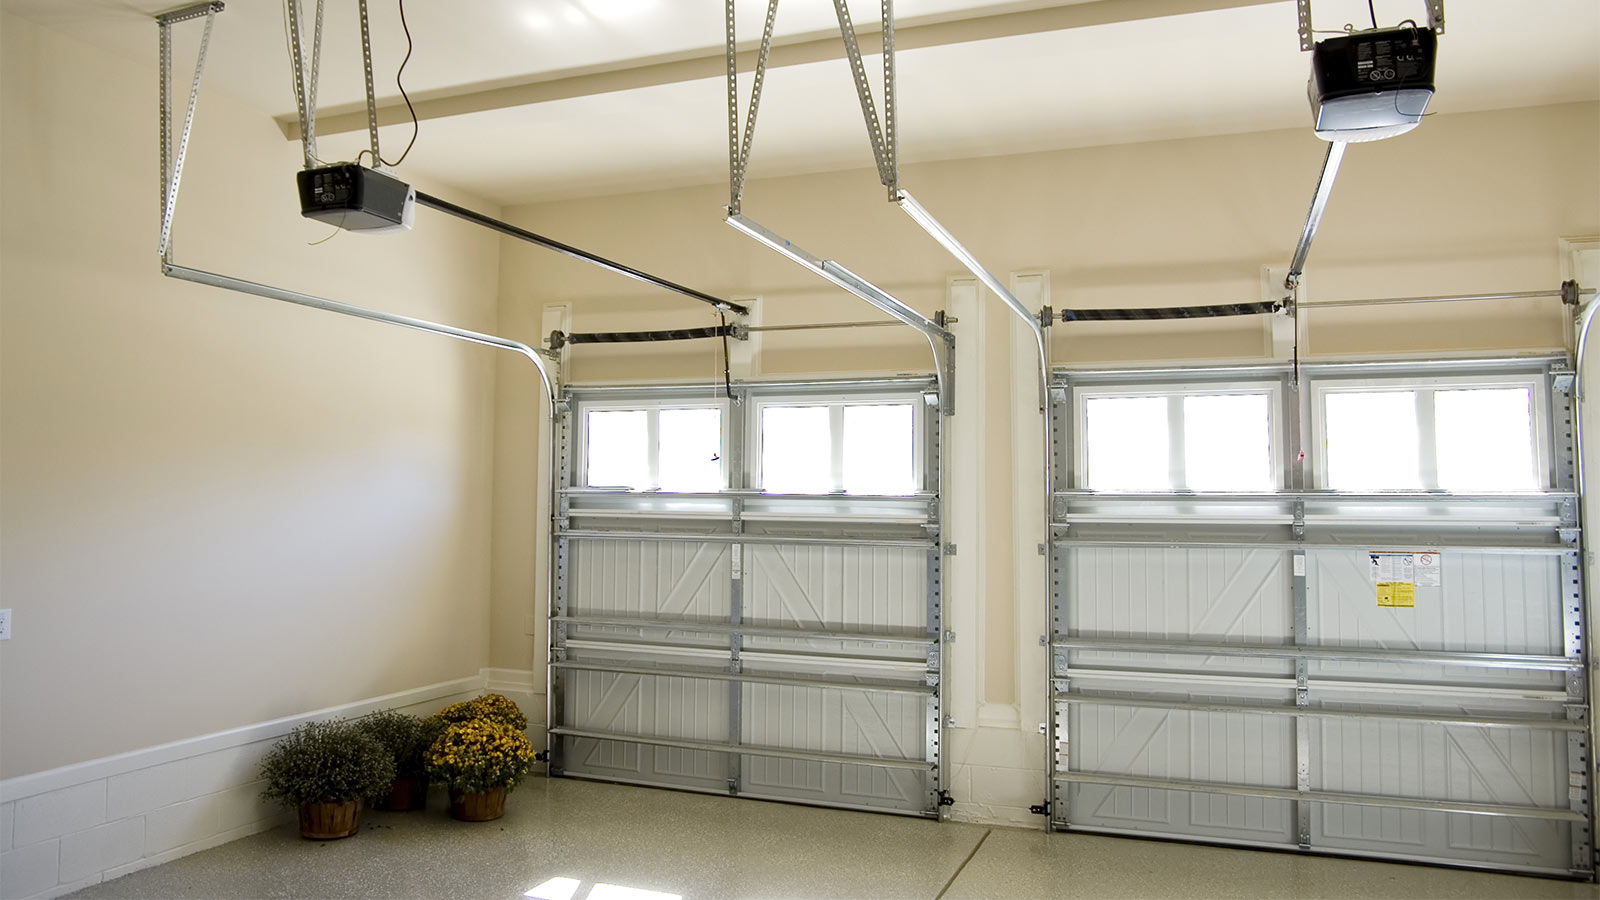 Sectional Garage Doors from Electric Roller Garage Doors Surrey suppliers.